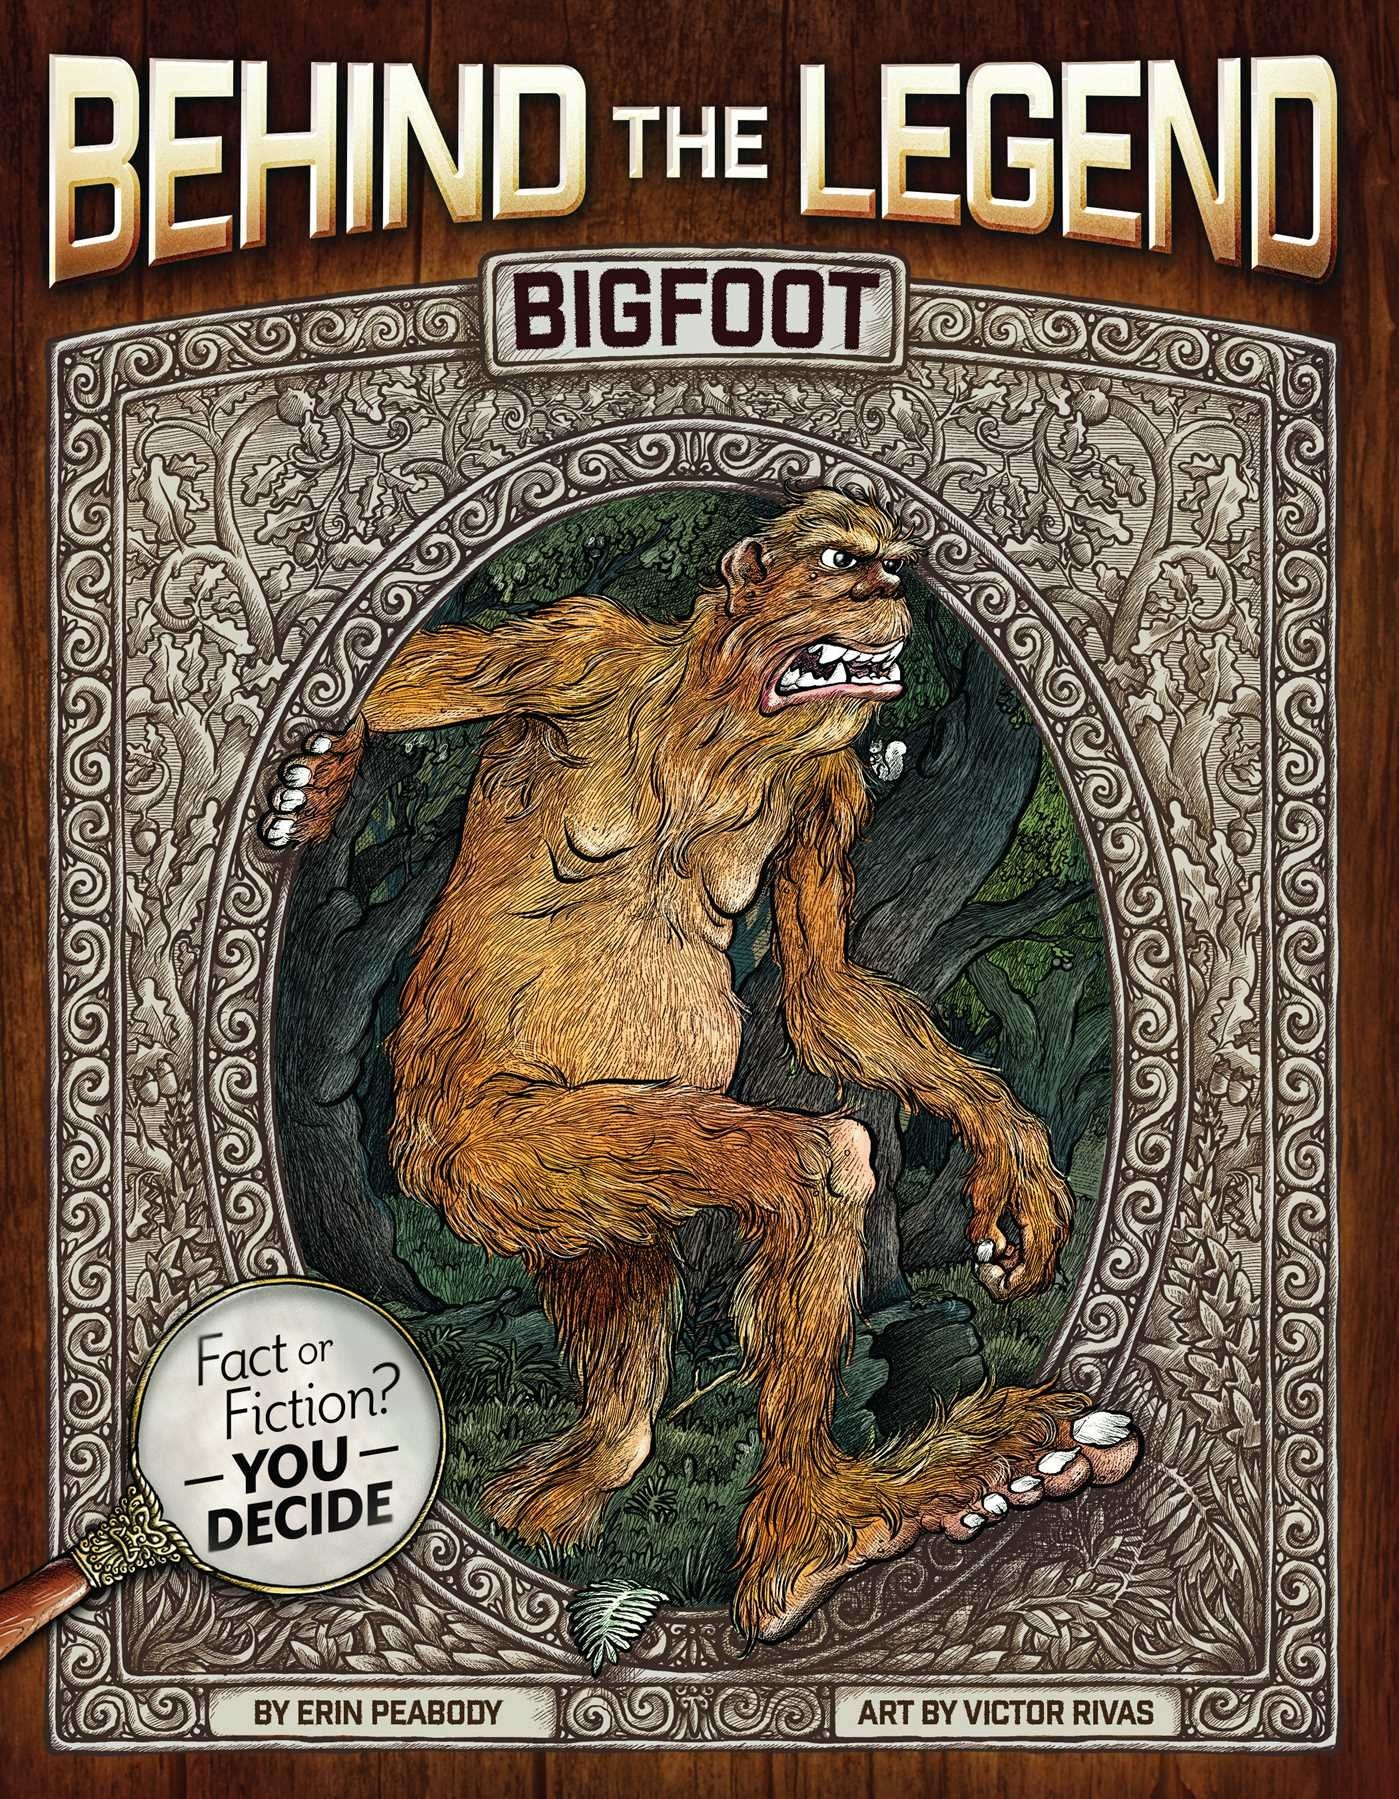 btl bigfoot - Behind the Legend Book Series Perfect Intro to Horror for Kids